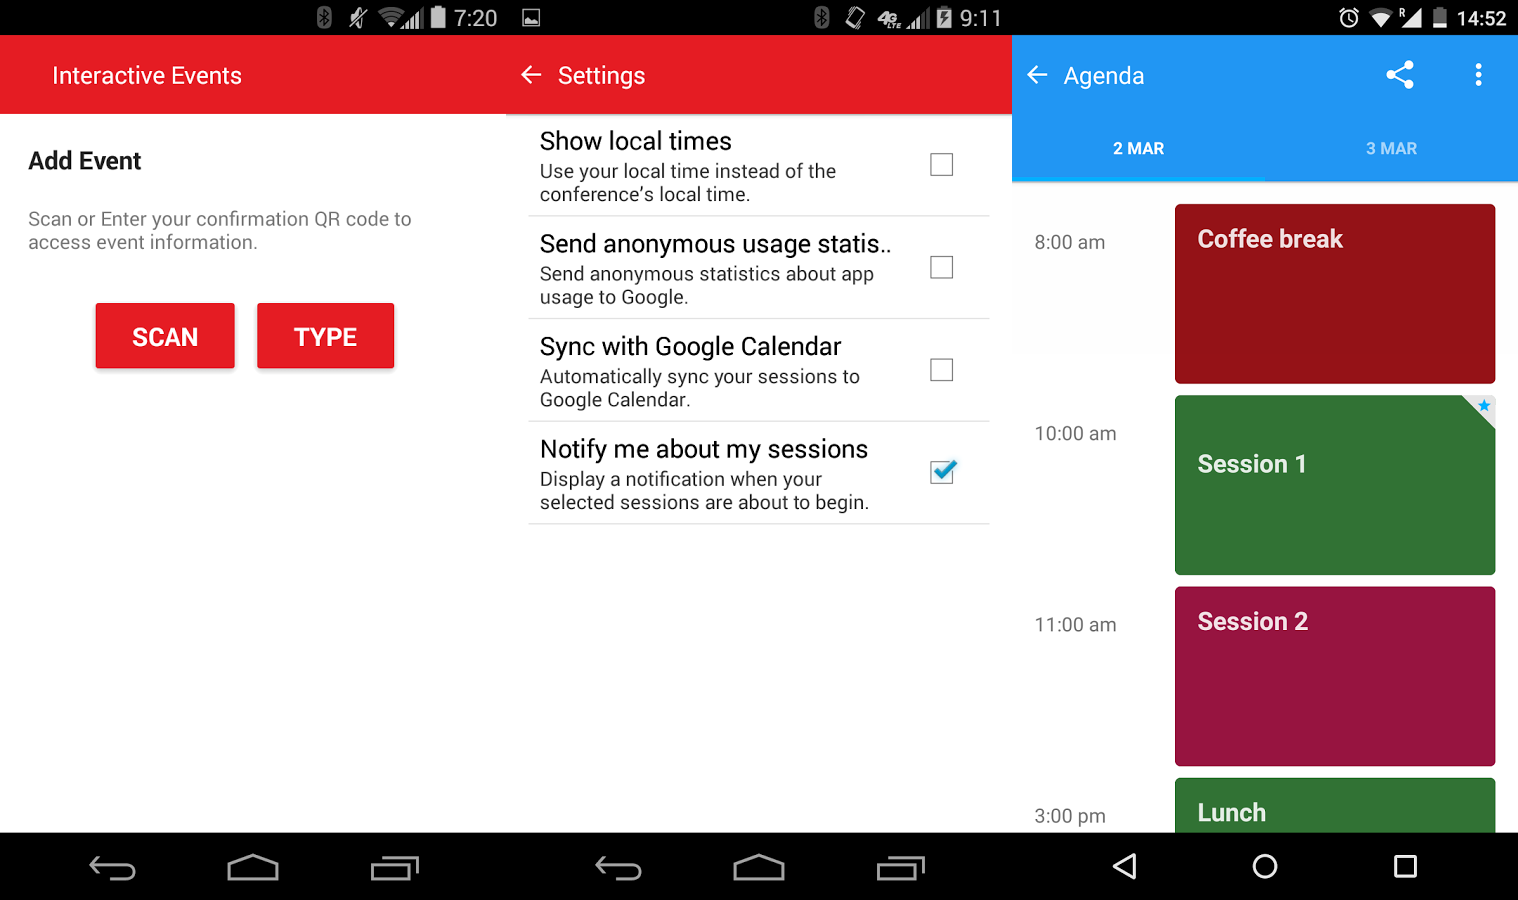 google_interactive_events_android